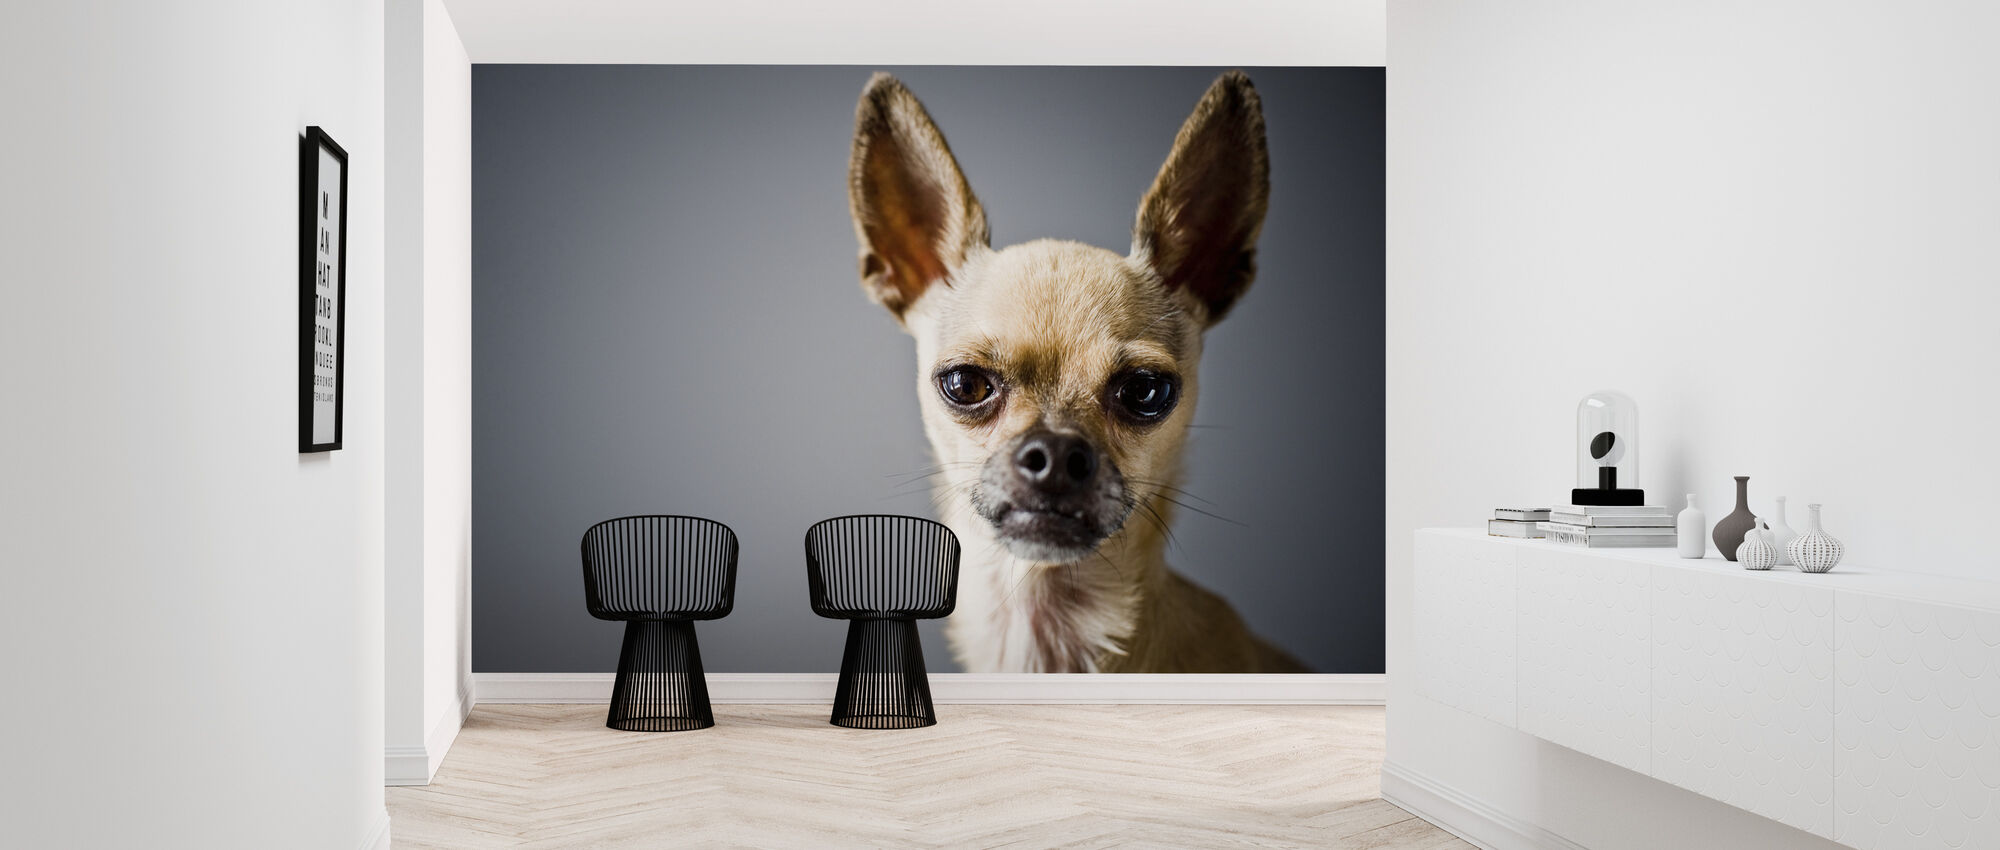 Chihuahua Imitating Lama - Wallpaper - Hallway